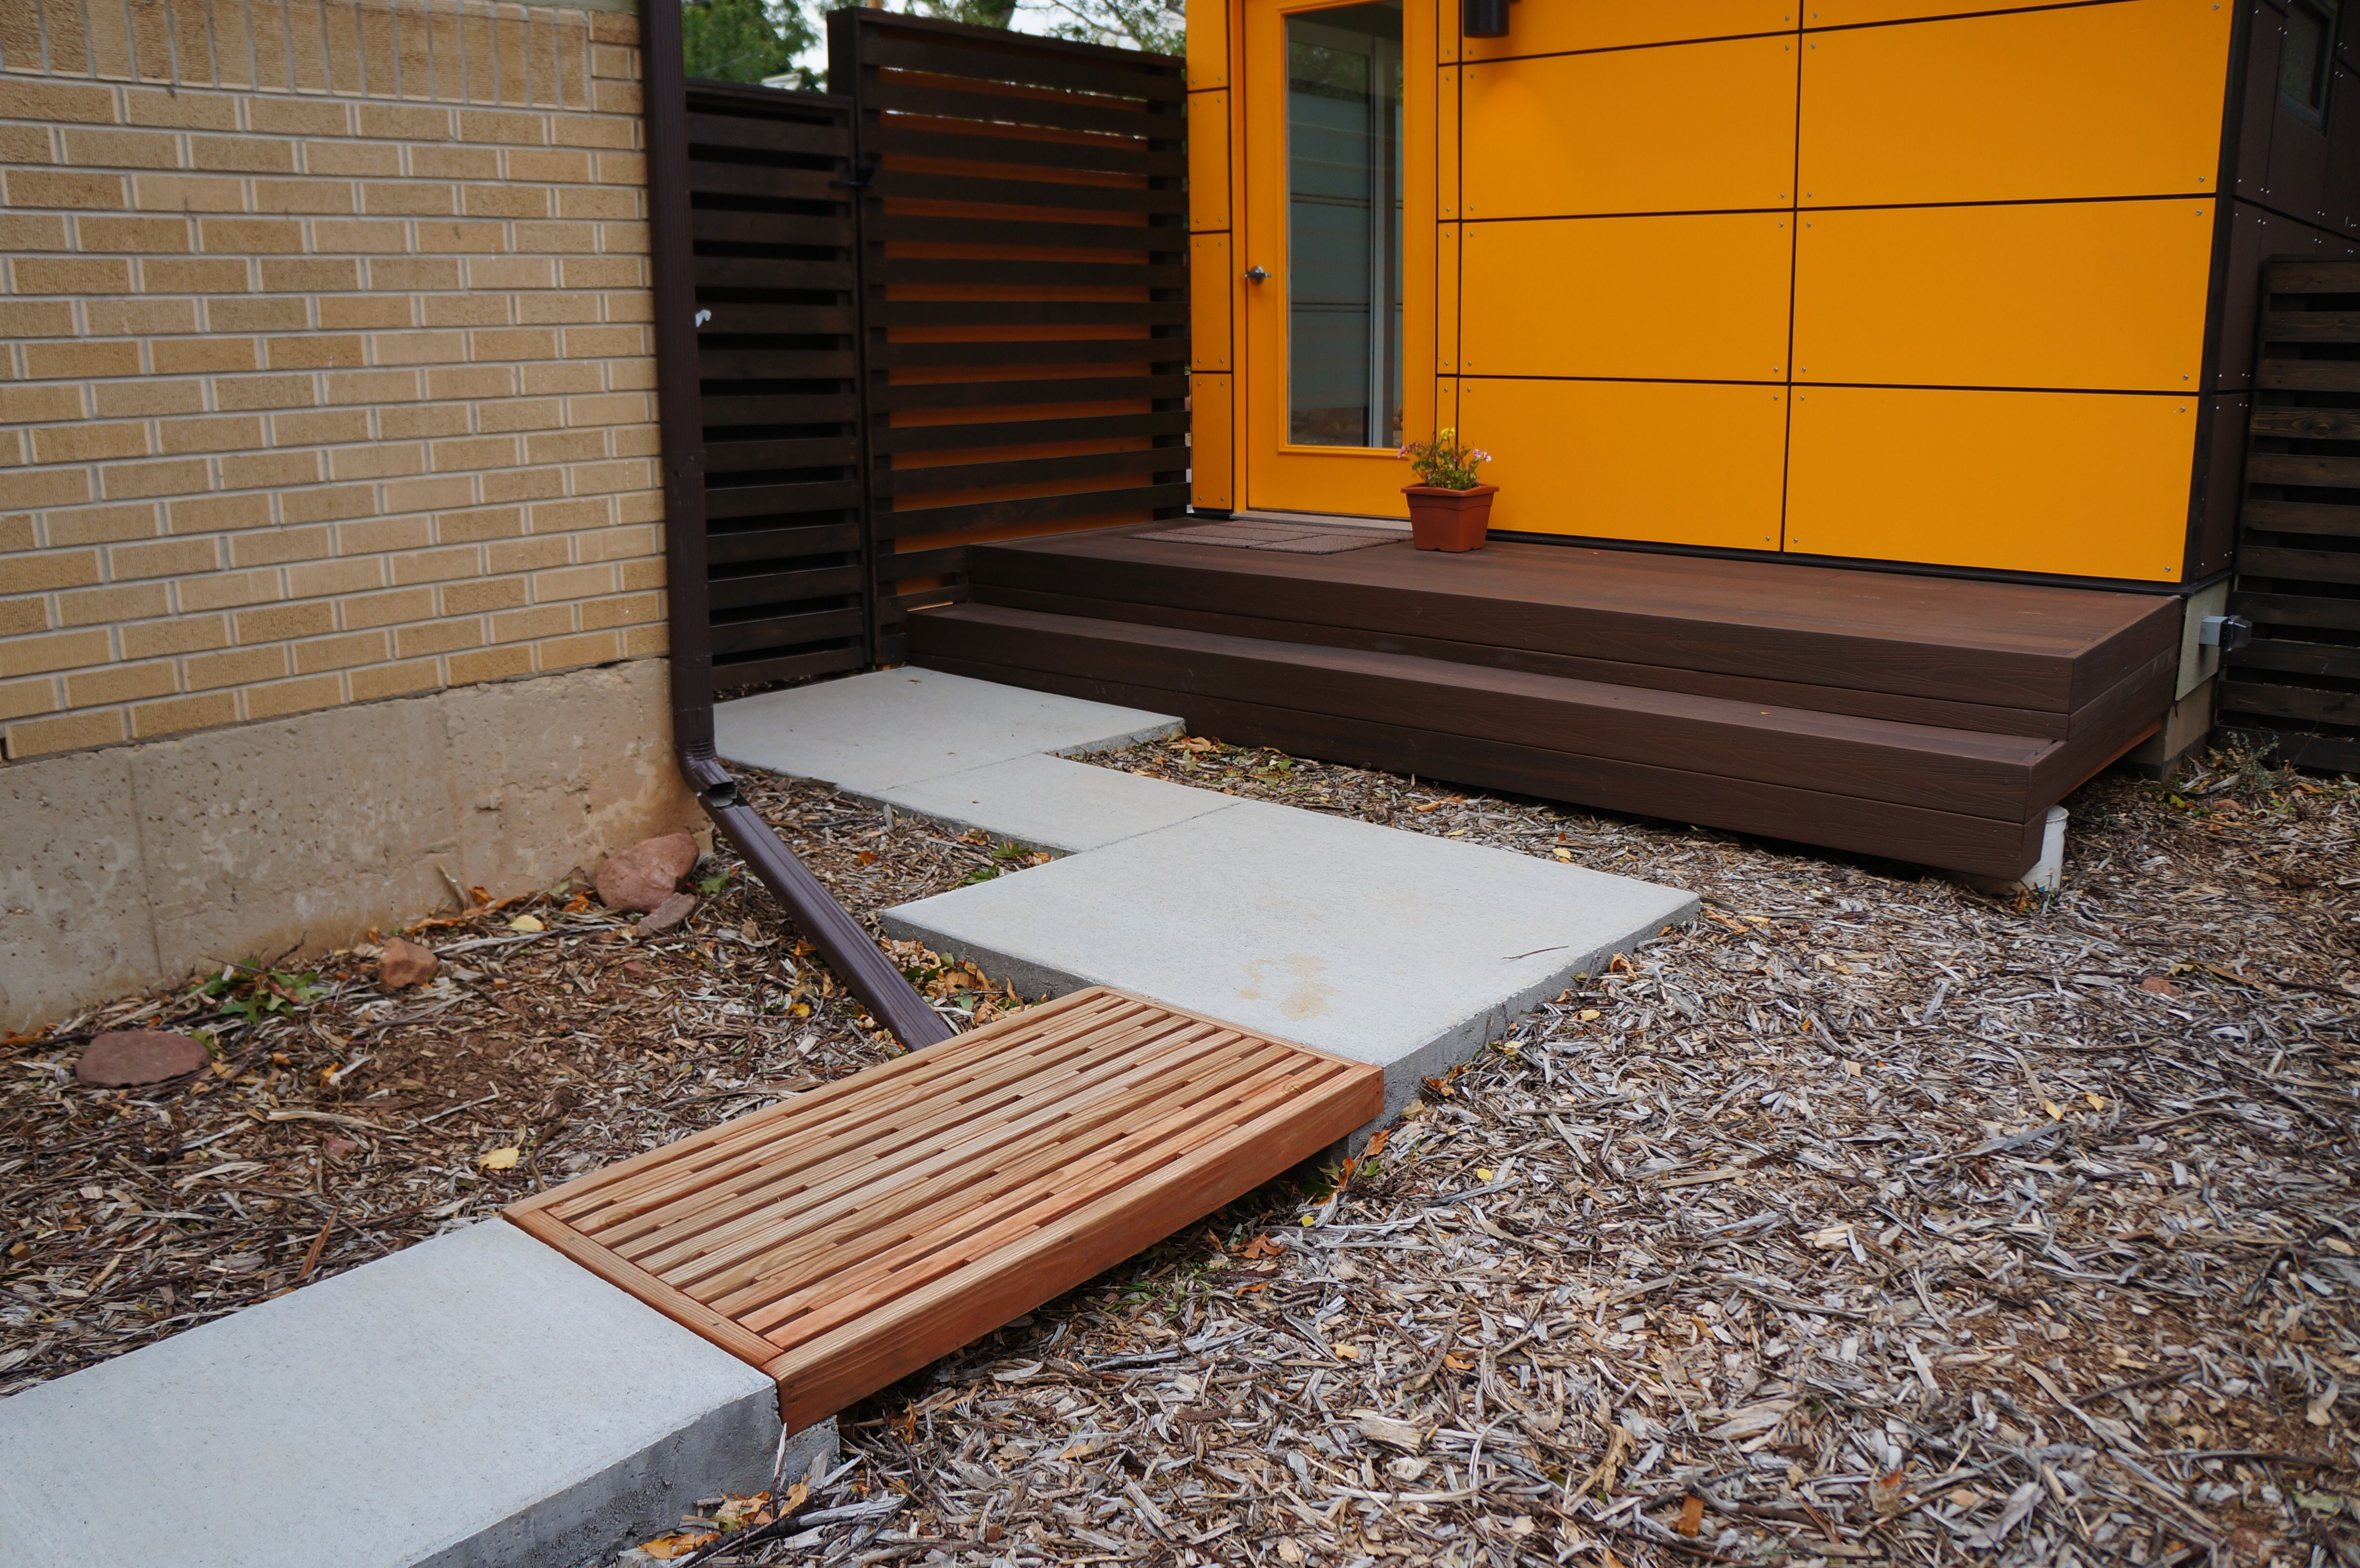 www studio shed com side yard entrance for clients to 14x26 studio